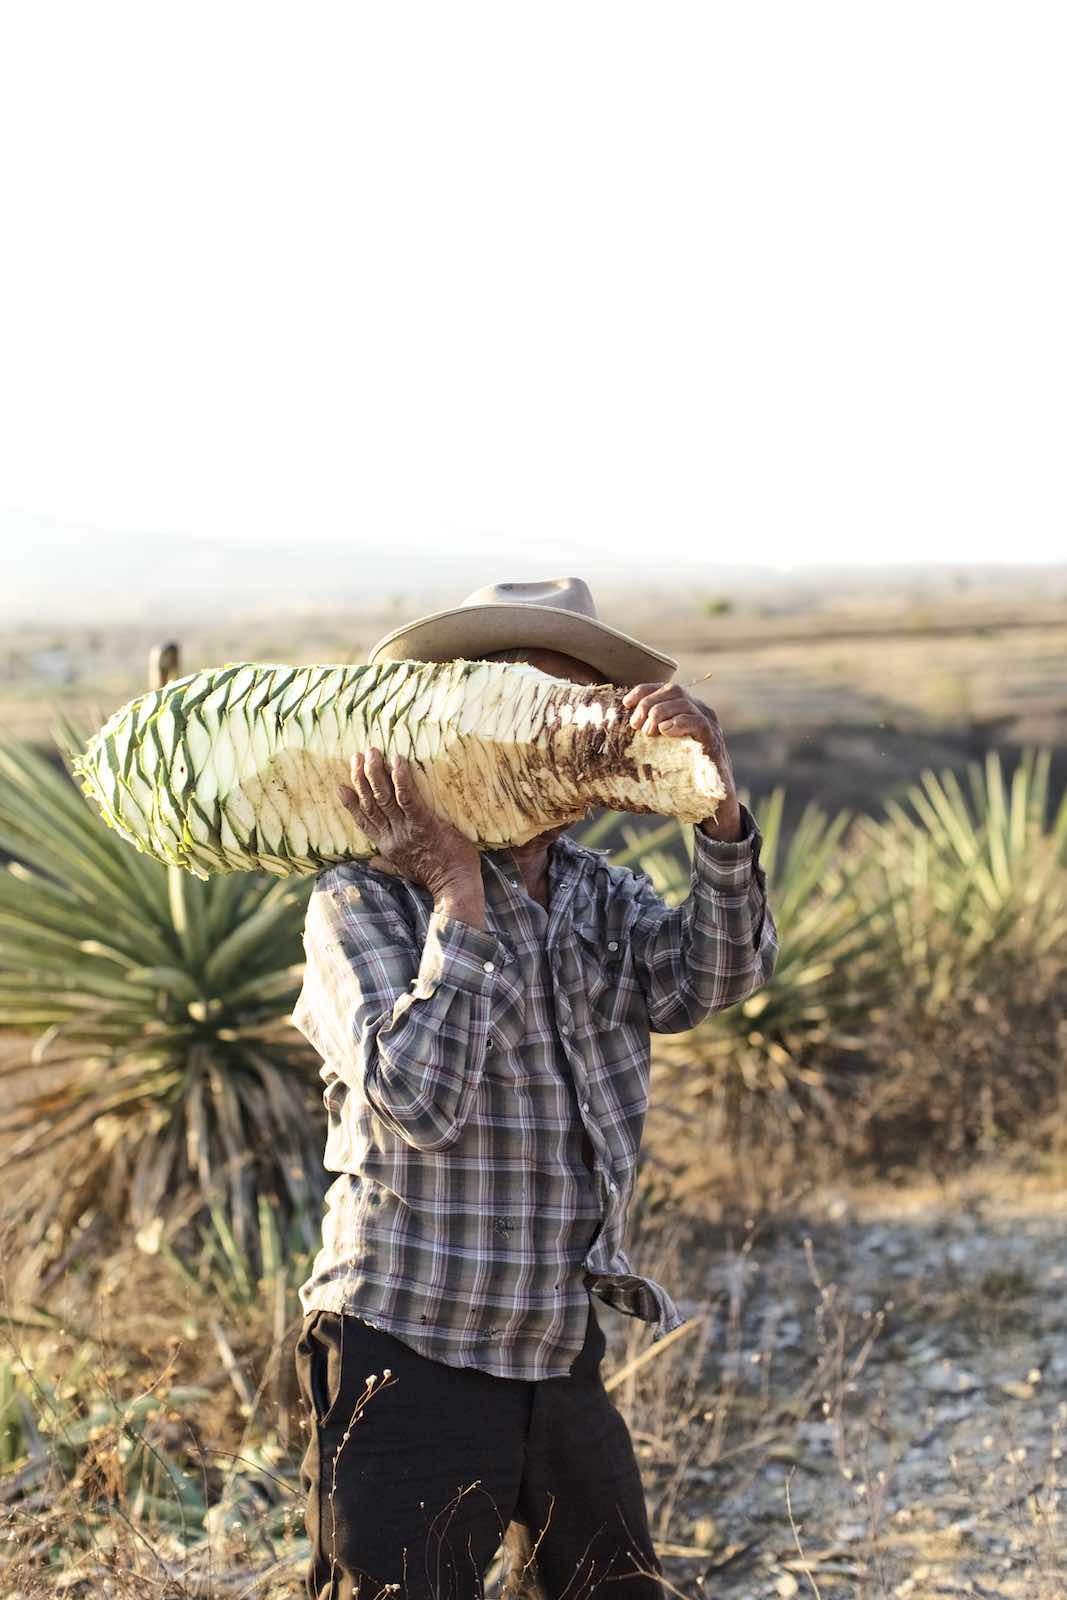 Jody Horton Photography - Farmer carrying a freshly cut piña.